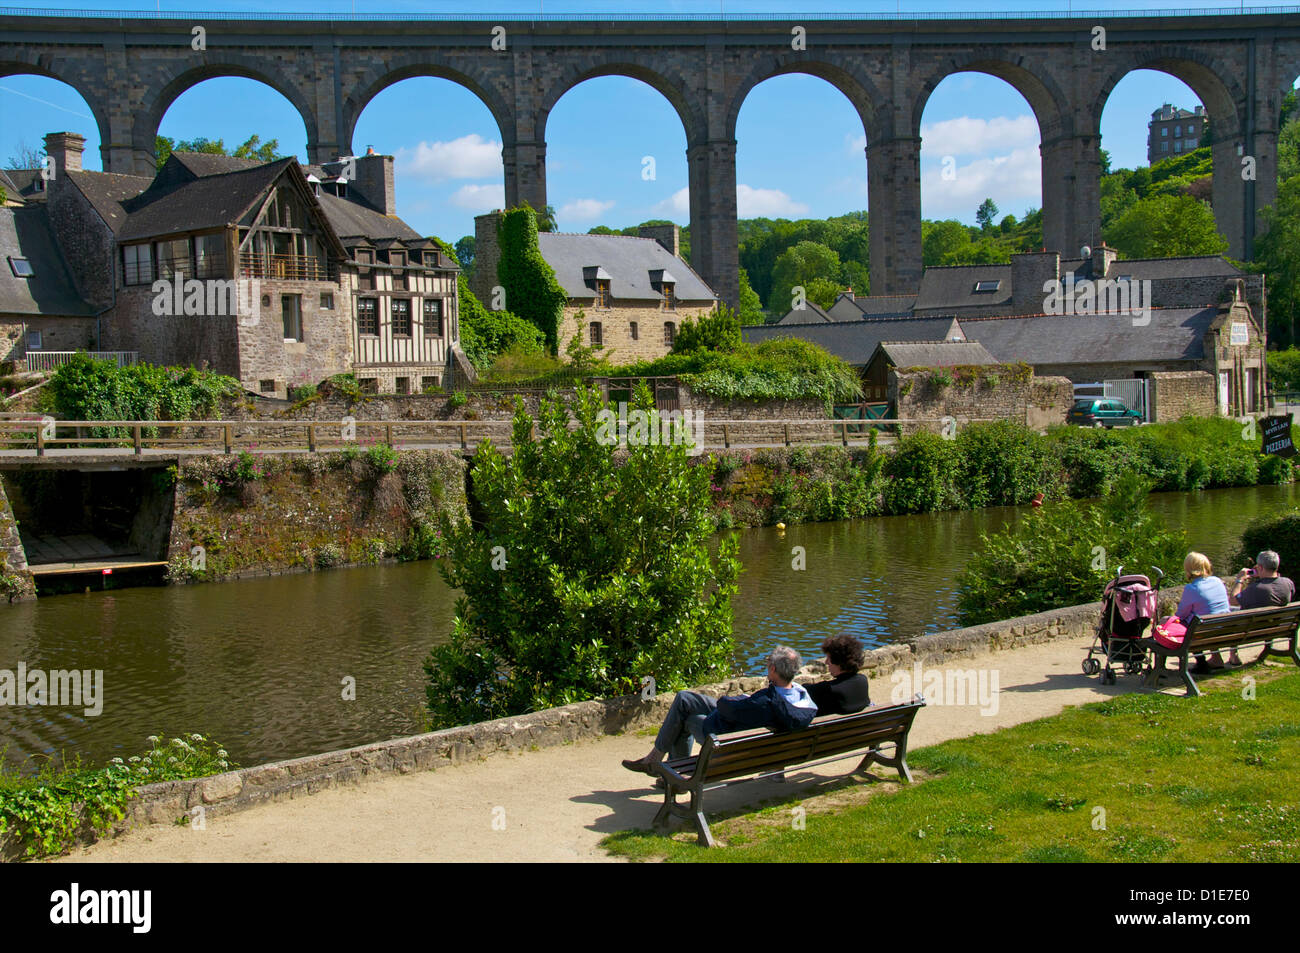 Banks of Rance River, view of old town houses, and viaduct, Dinan, Cotes d'Armor, Brittany, France, Europe - Stock Image